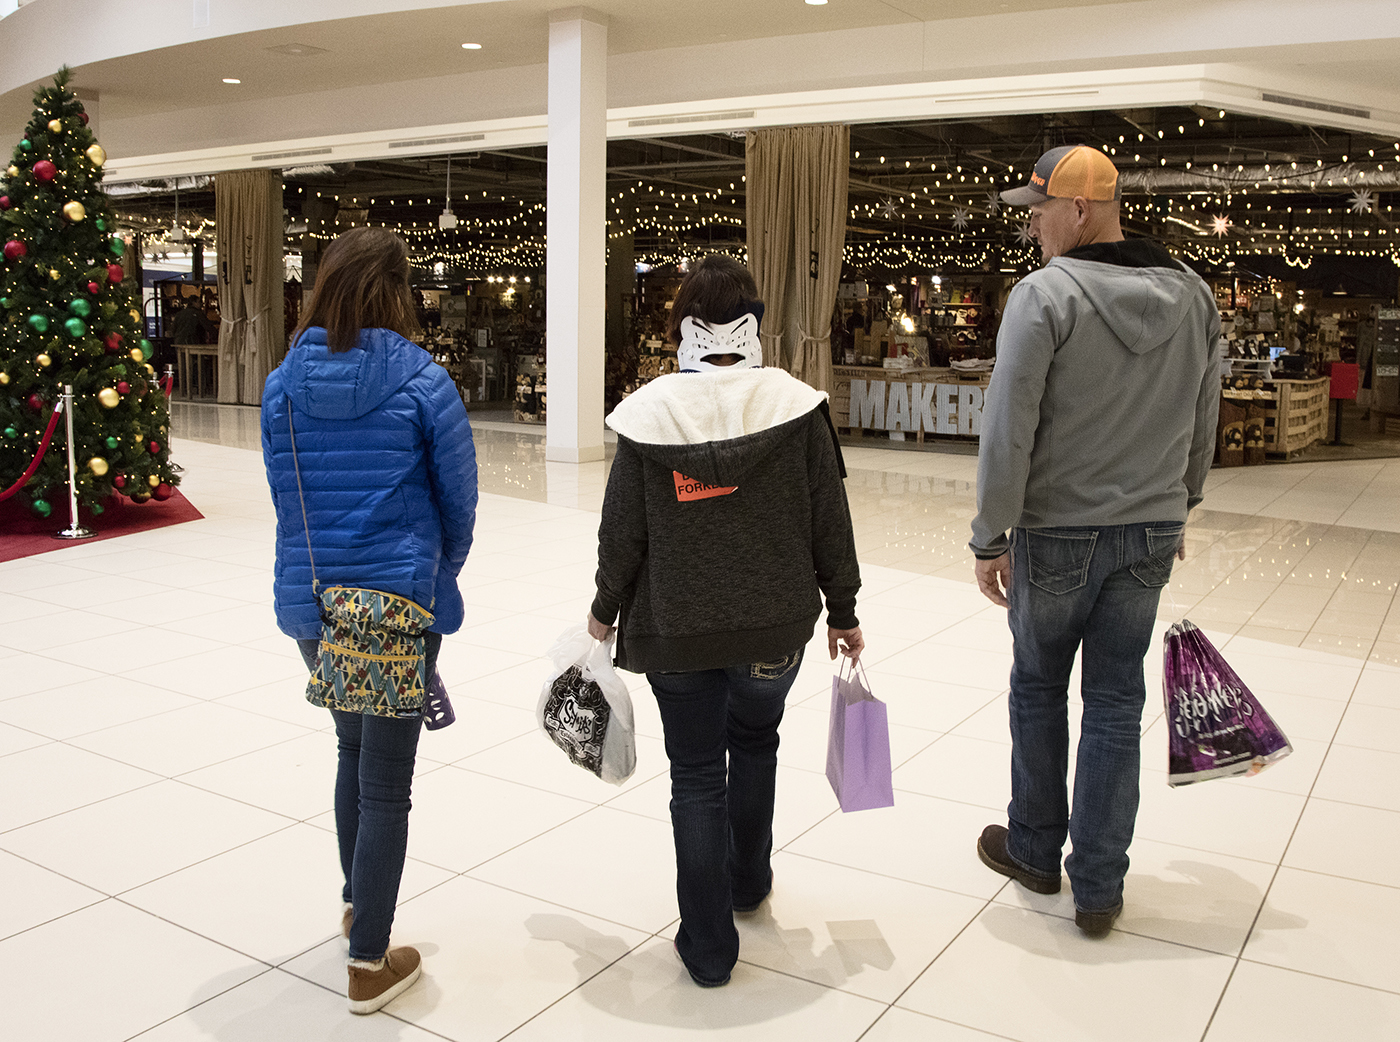 Craig Hospital Brain Injury Patient at a Mall Shopping for Holiday Gifts